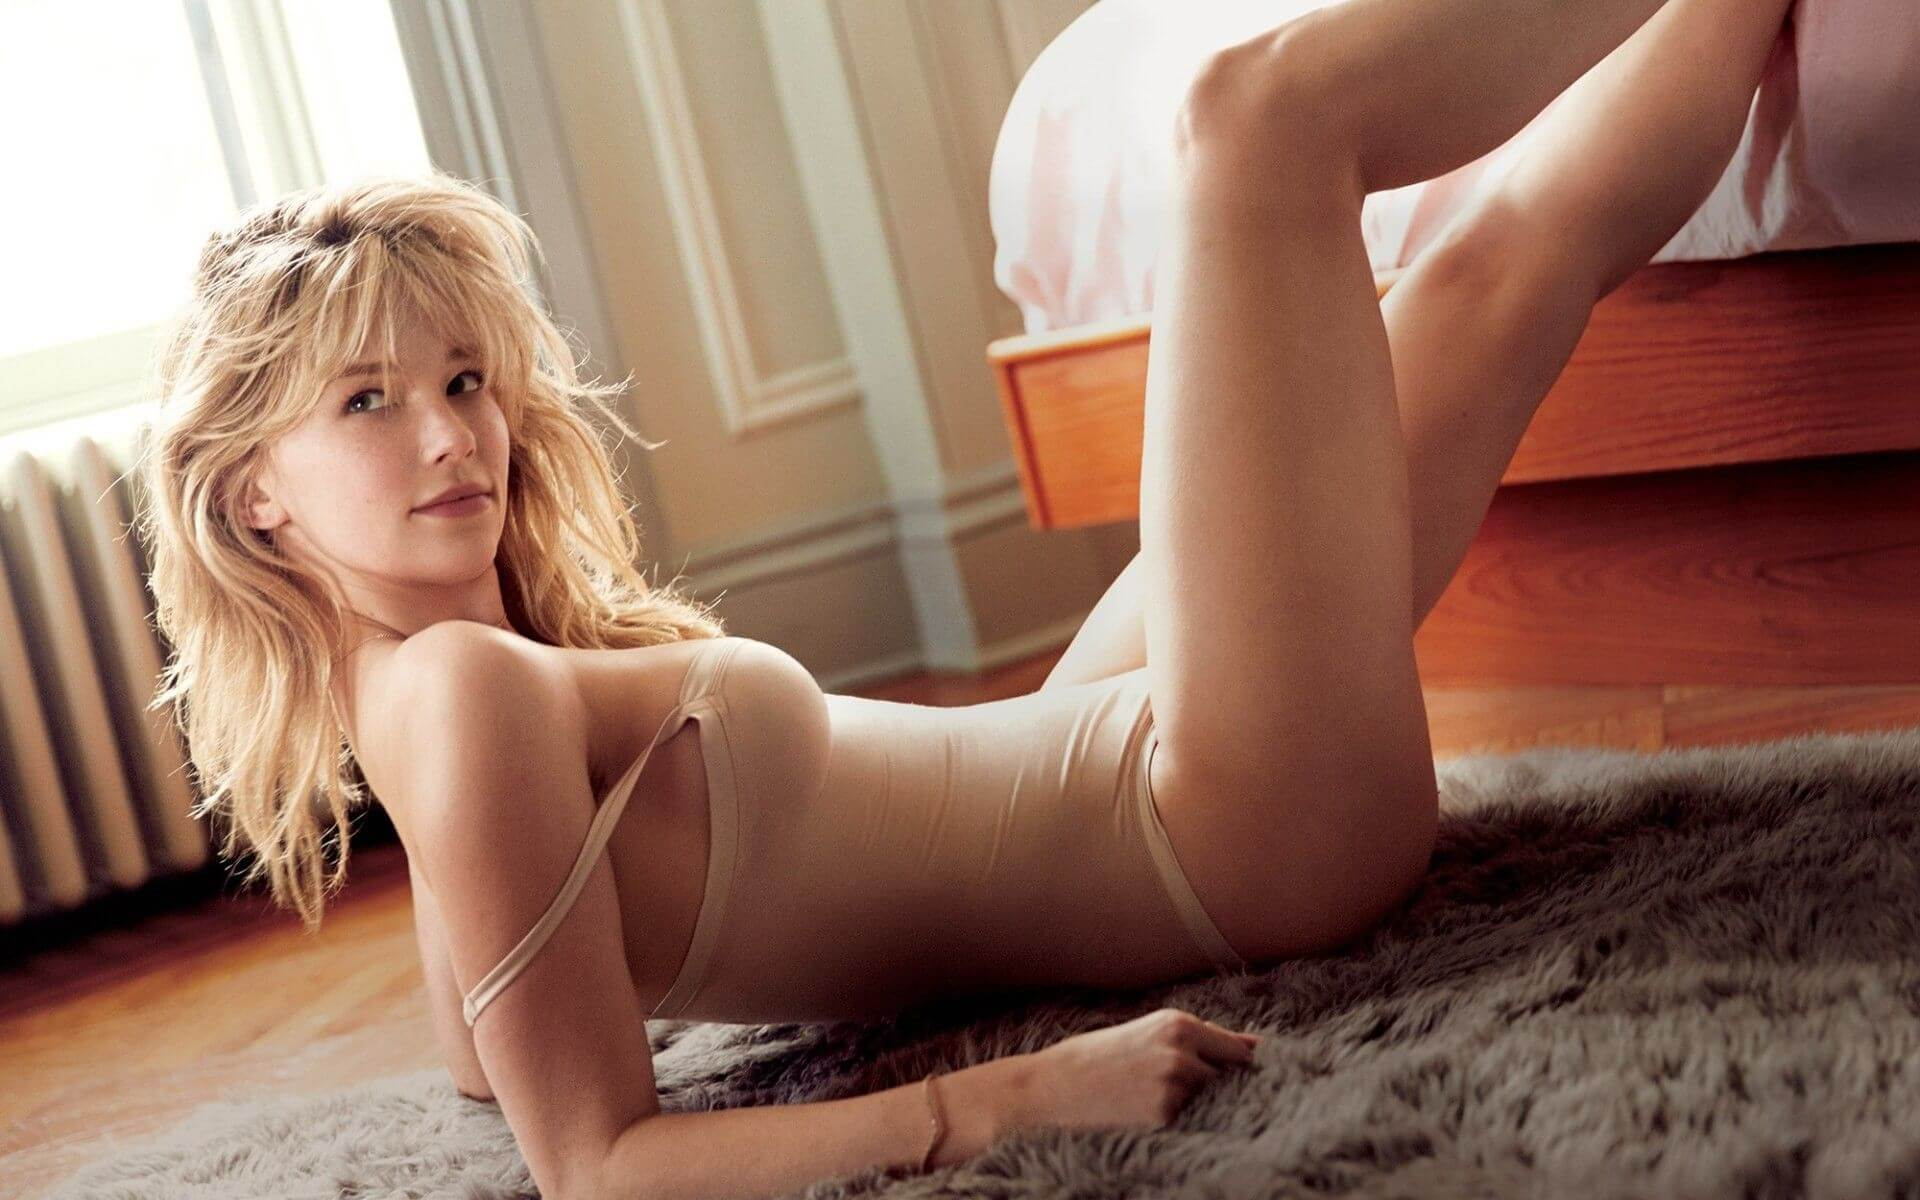 49 Hot Pictures Of Haley Bennett That Will Blow Your Mind-3861